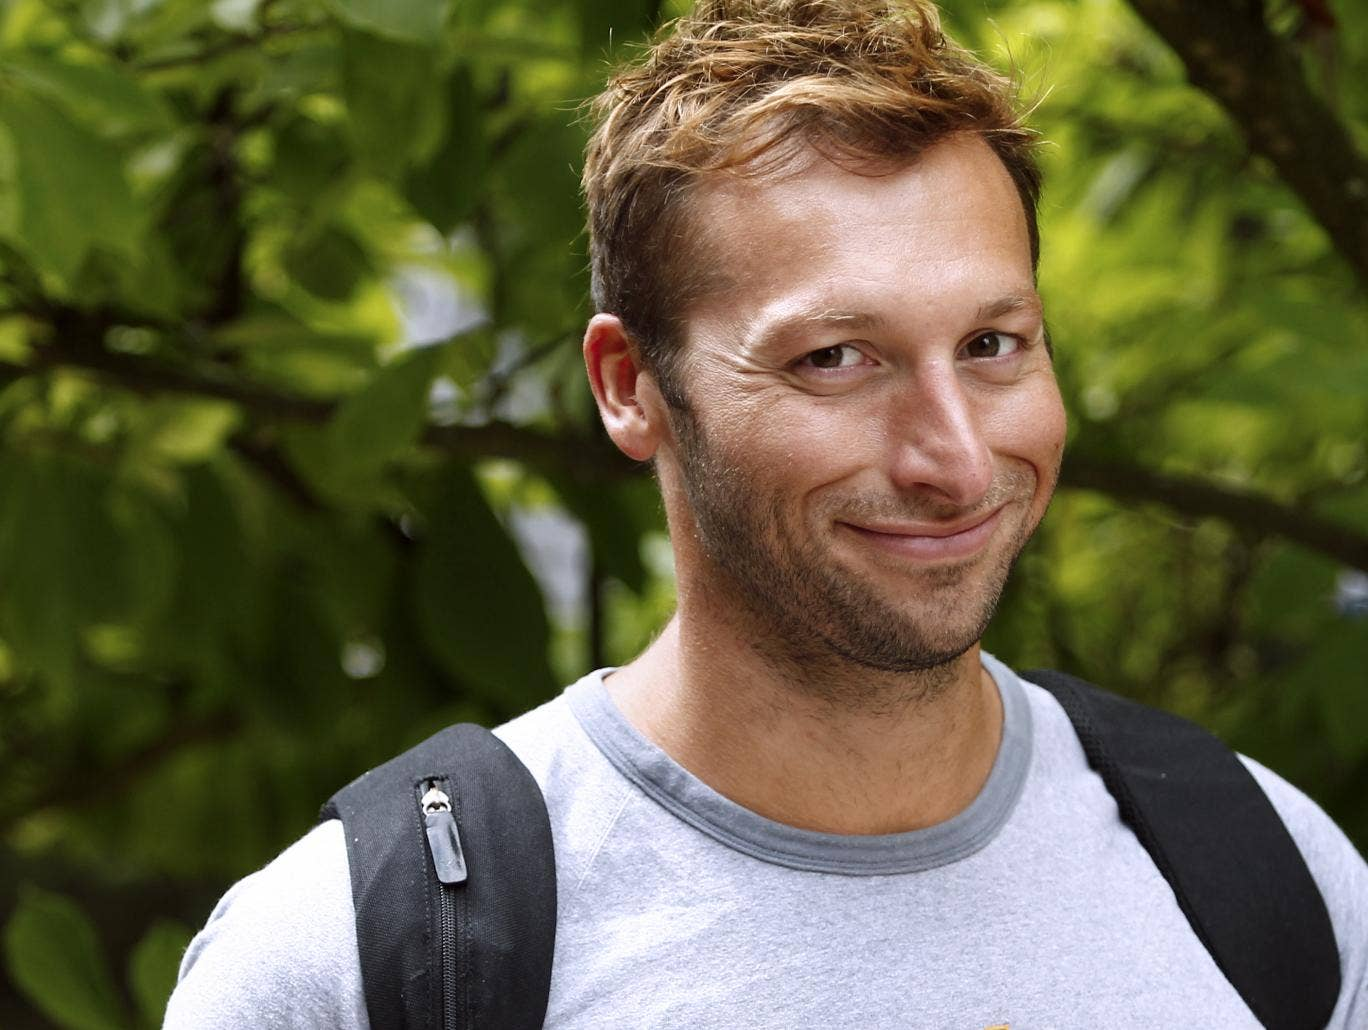 Ian Thorpe has thanked his supporters after the athlete said in an interview that he is gay